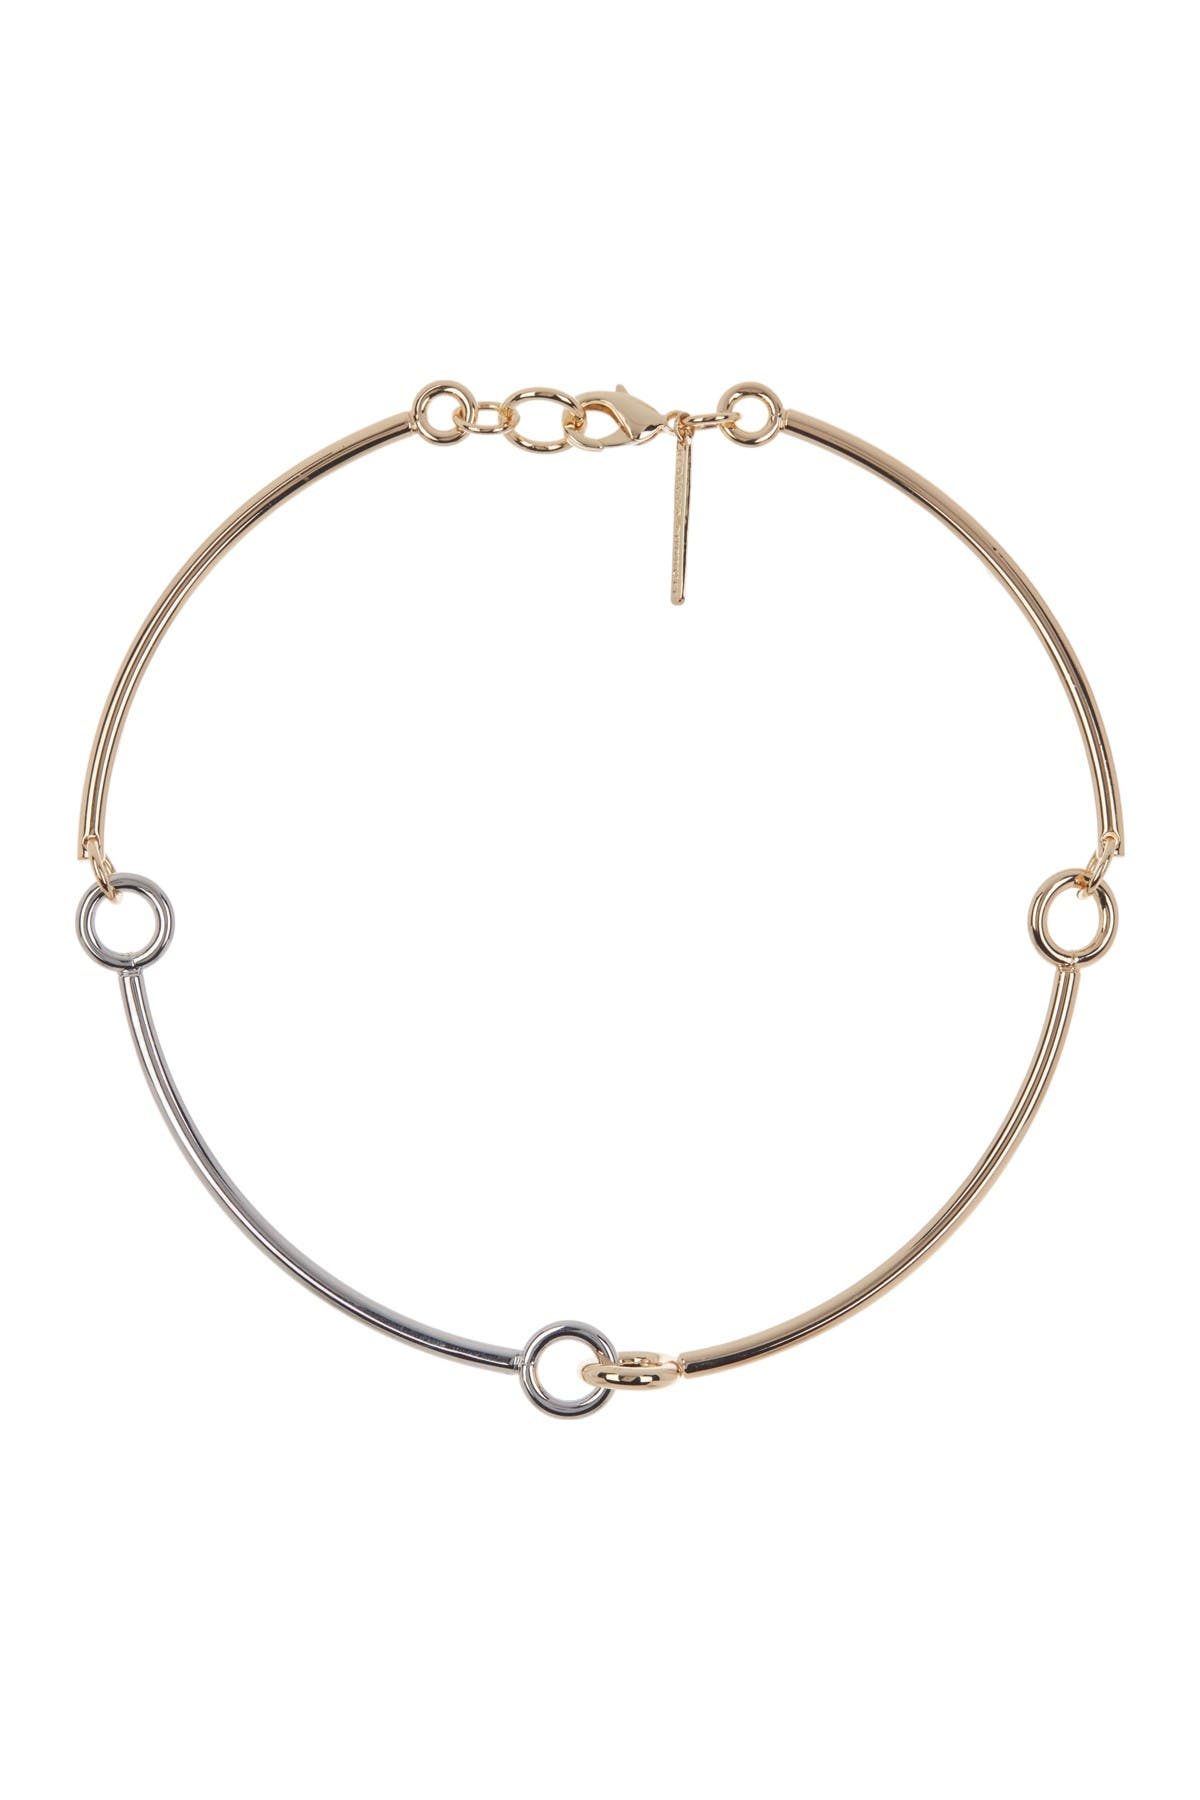 Image of Rebecca Minkoff Gold Plated Brass Interlocking Ring Collar Necklace